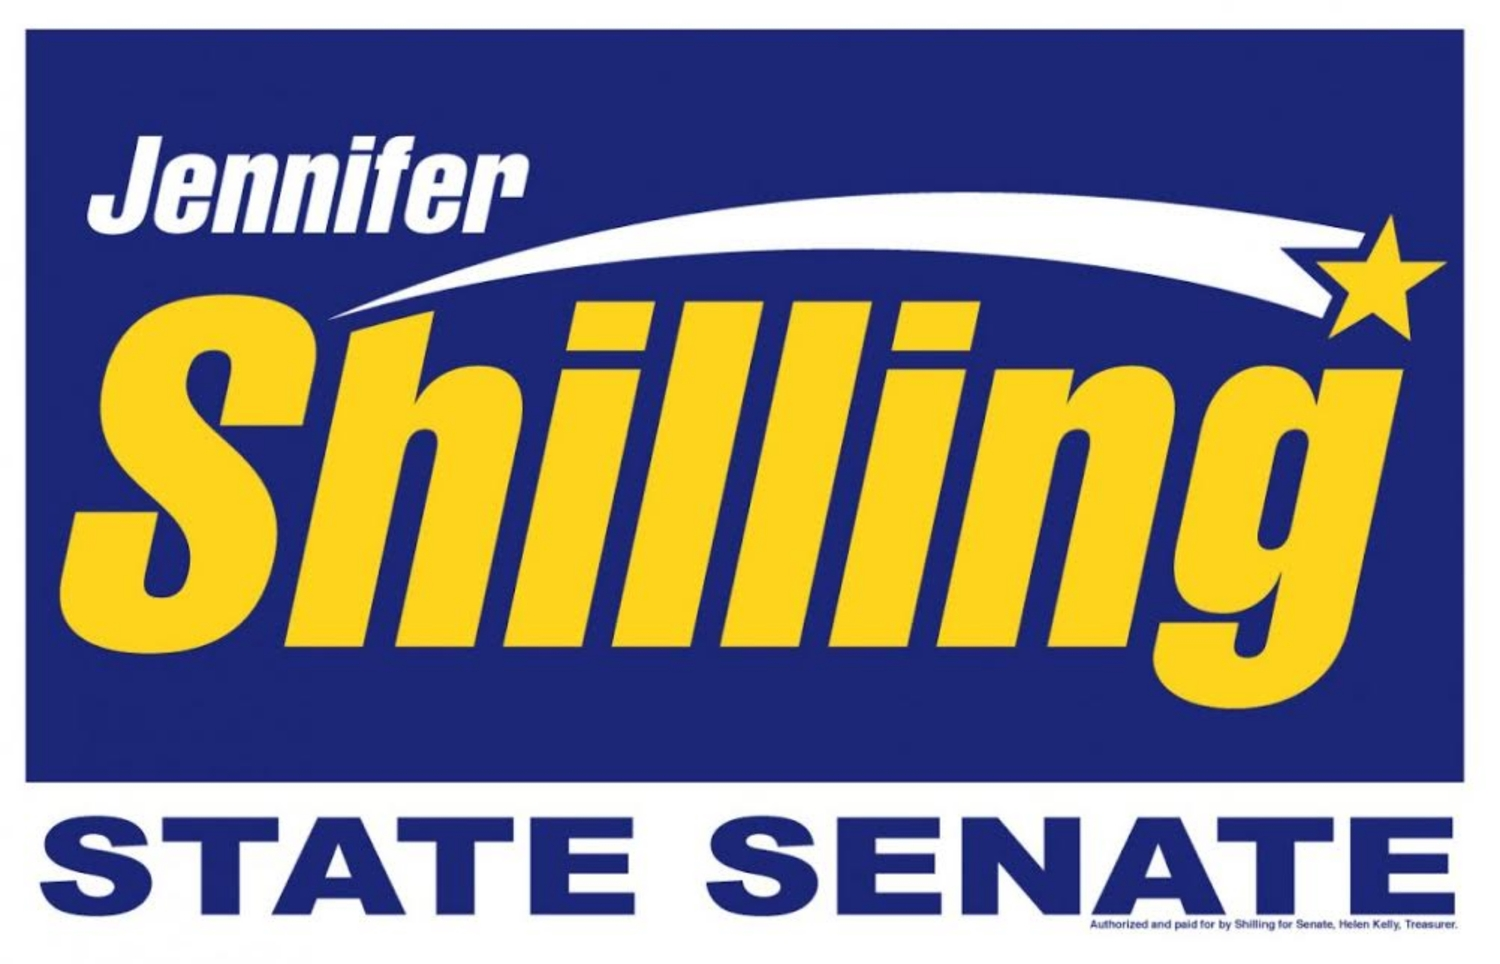 Jennifer Shilling for Senate